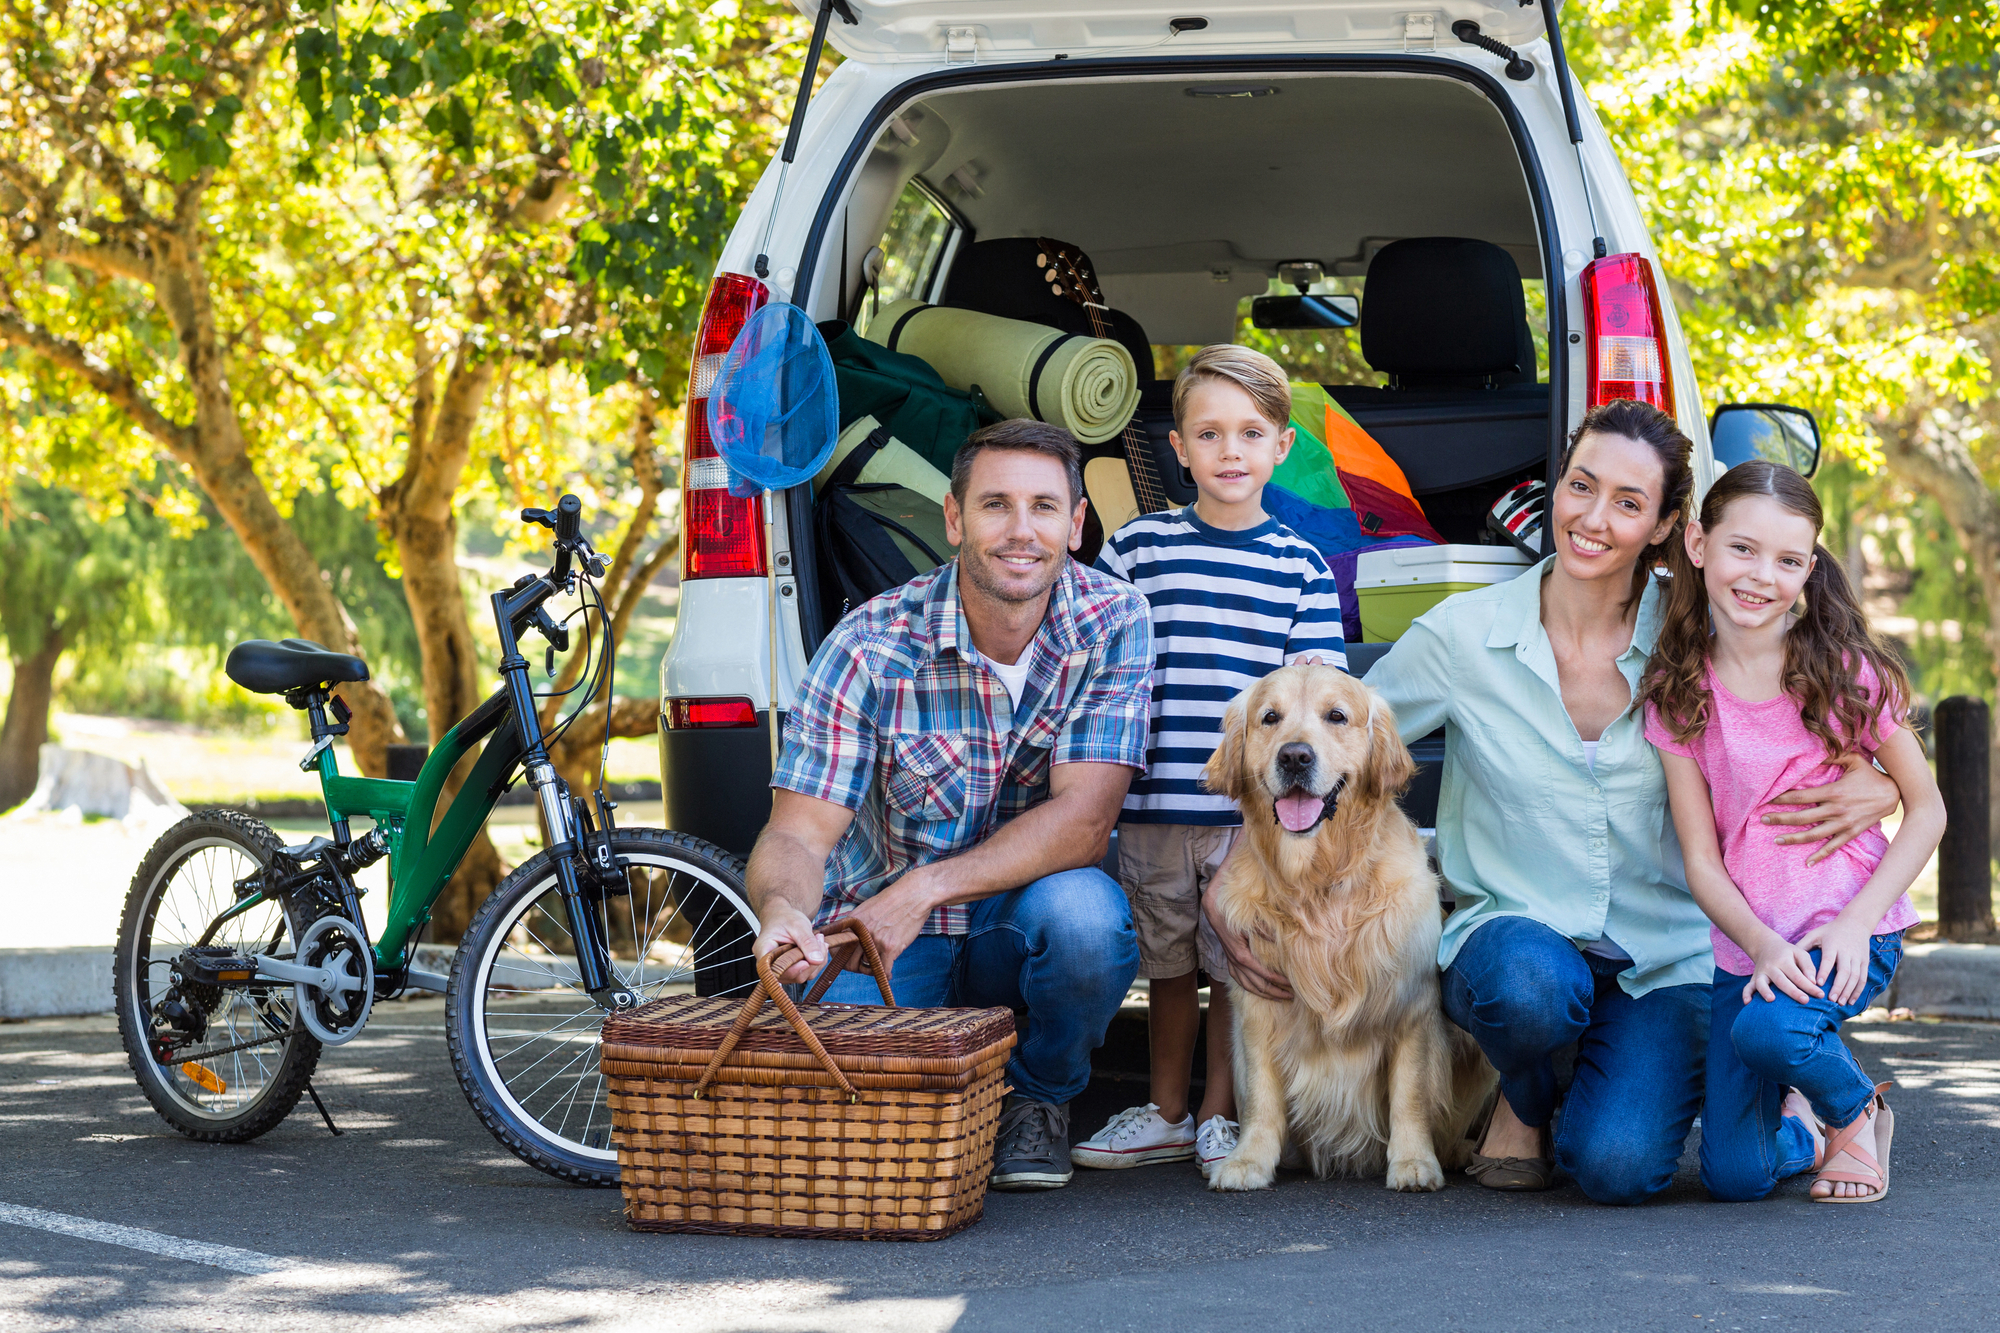 A family gets ready for a trip with their dog